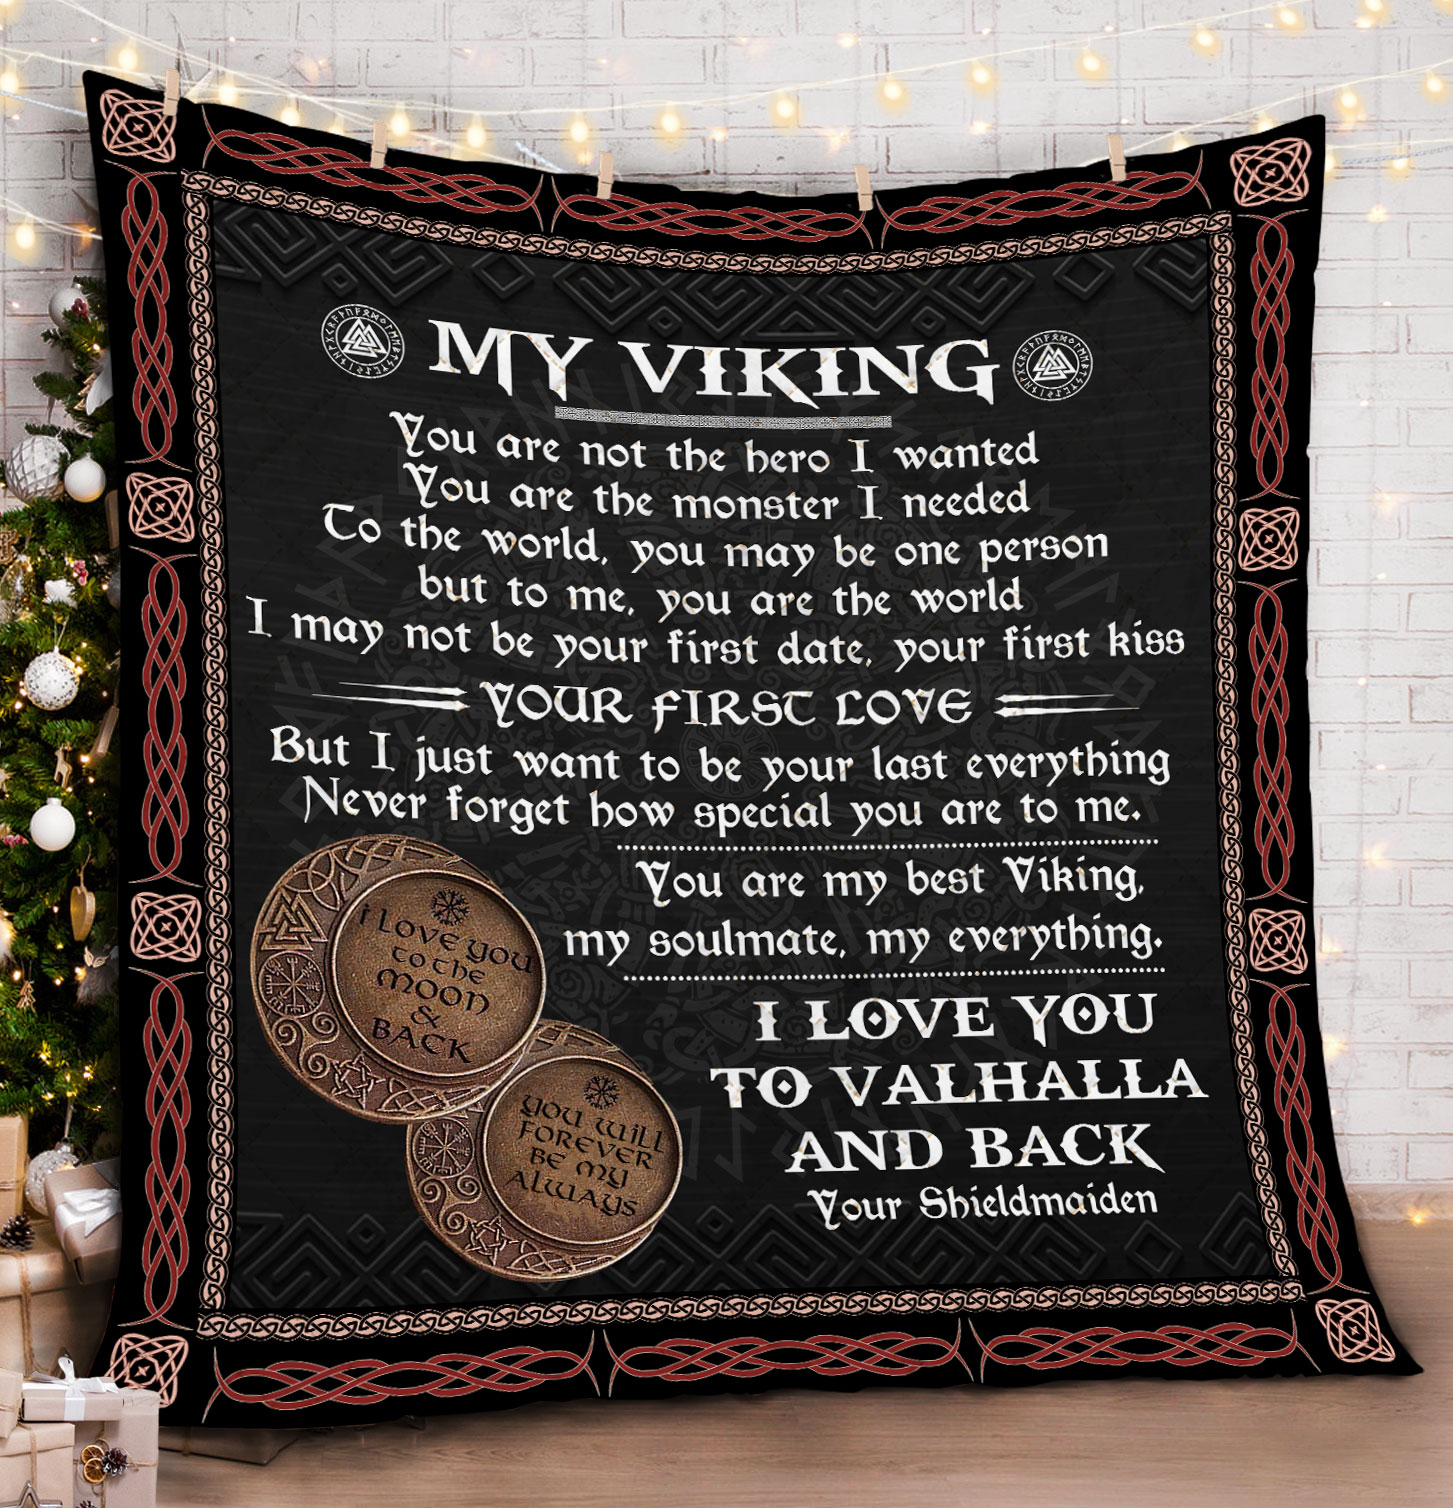 [special edition] to my viking i love you to valhalla and back all over printed blanket - maria